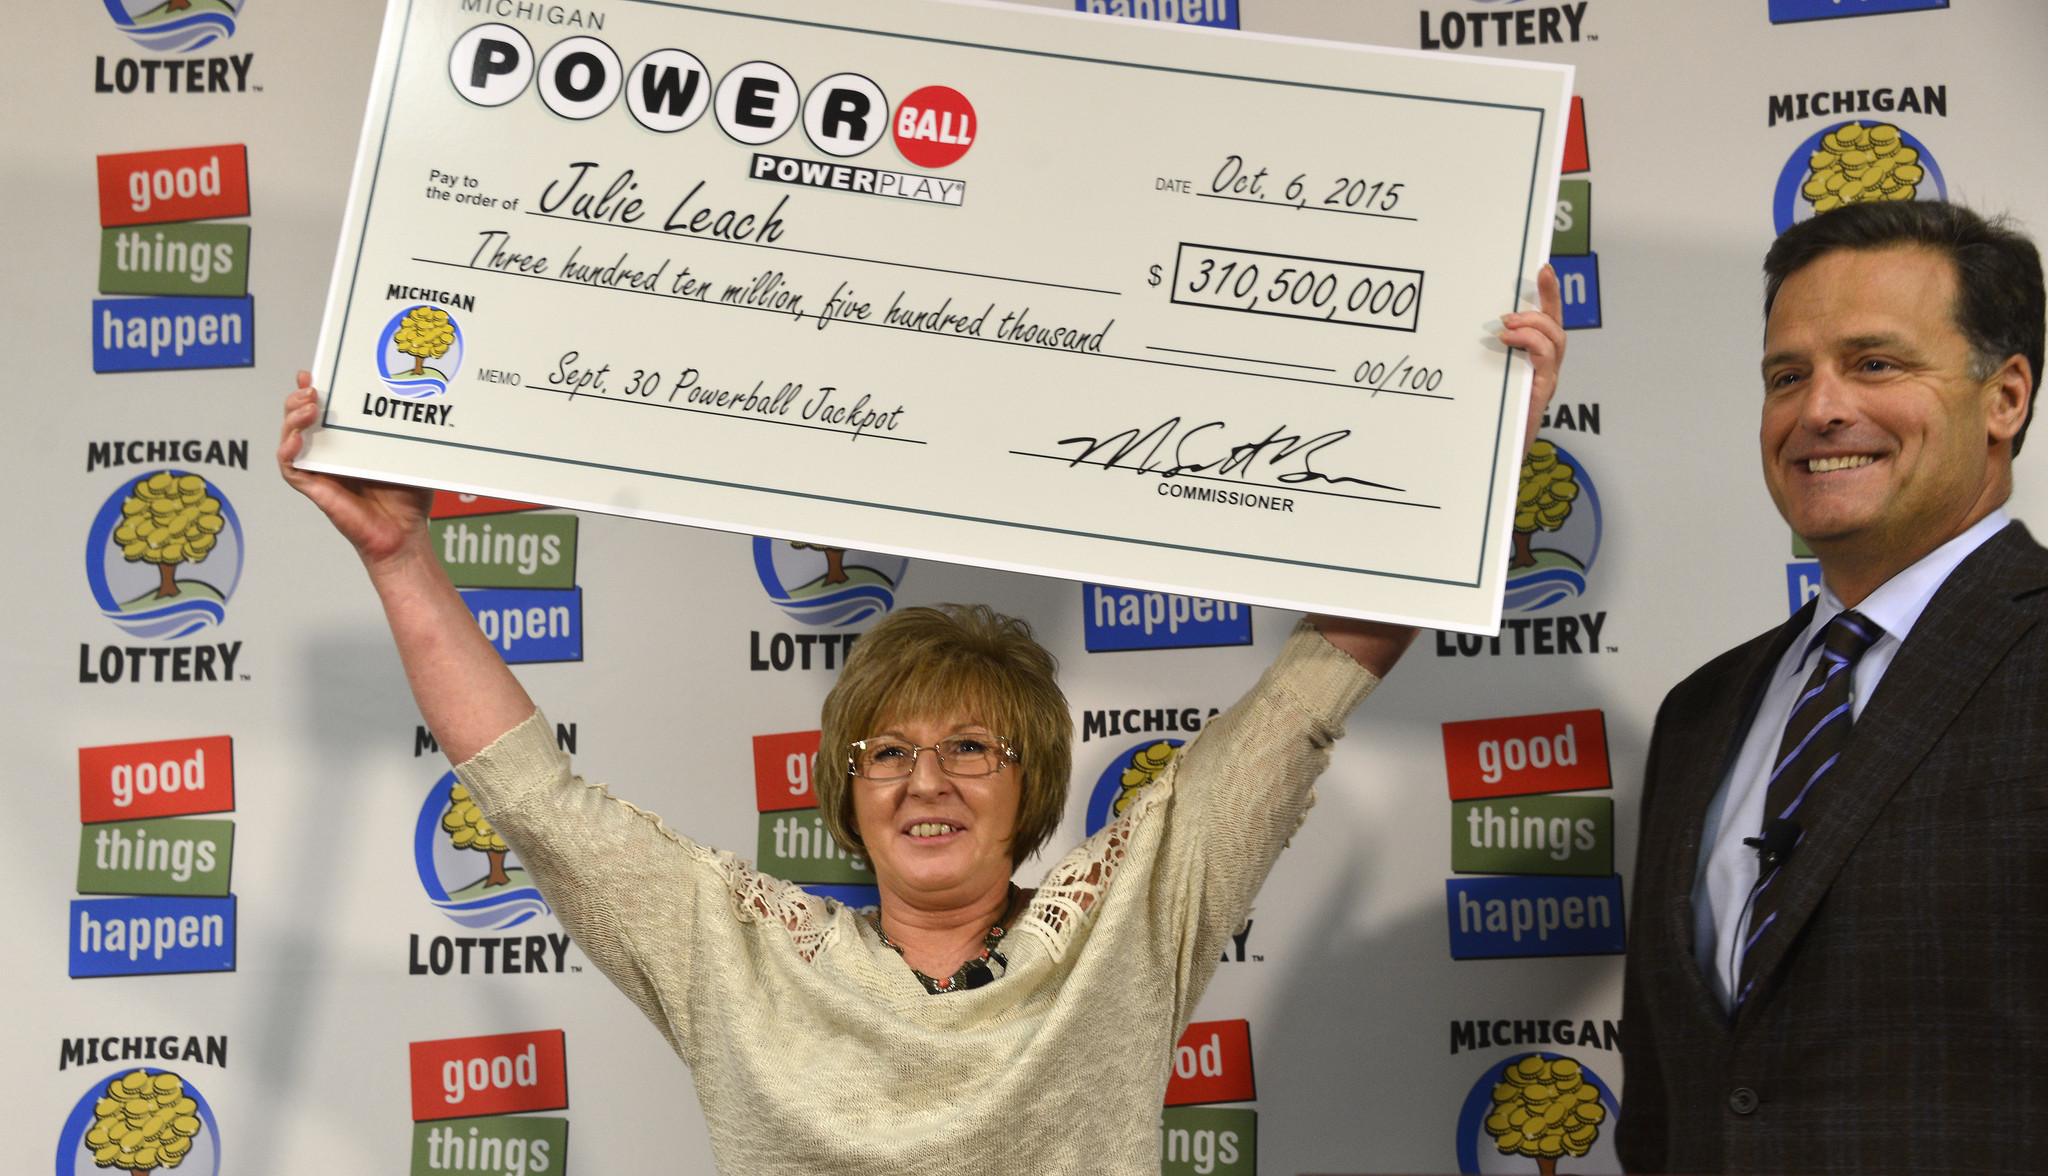 powerball numbers check photo - 1